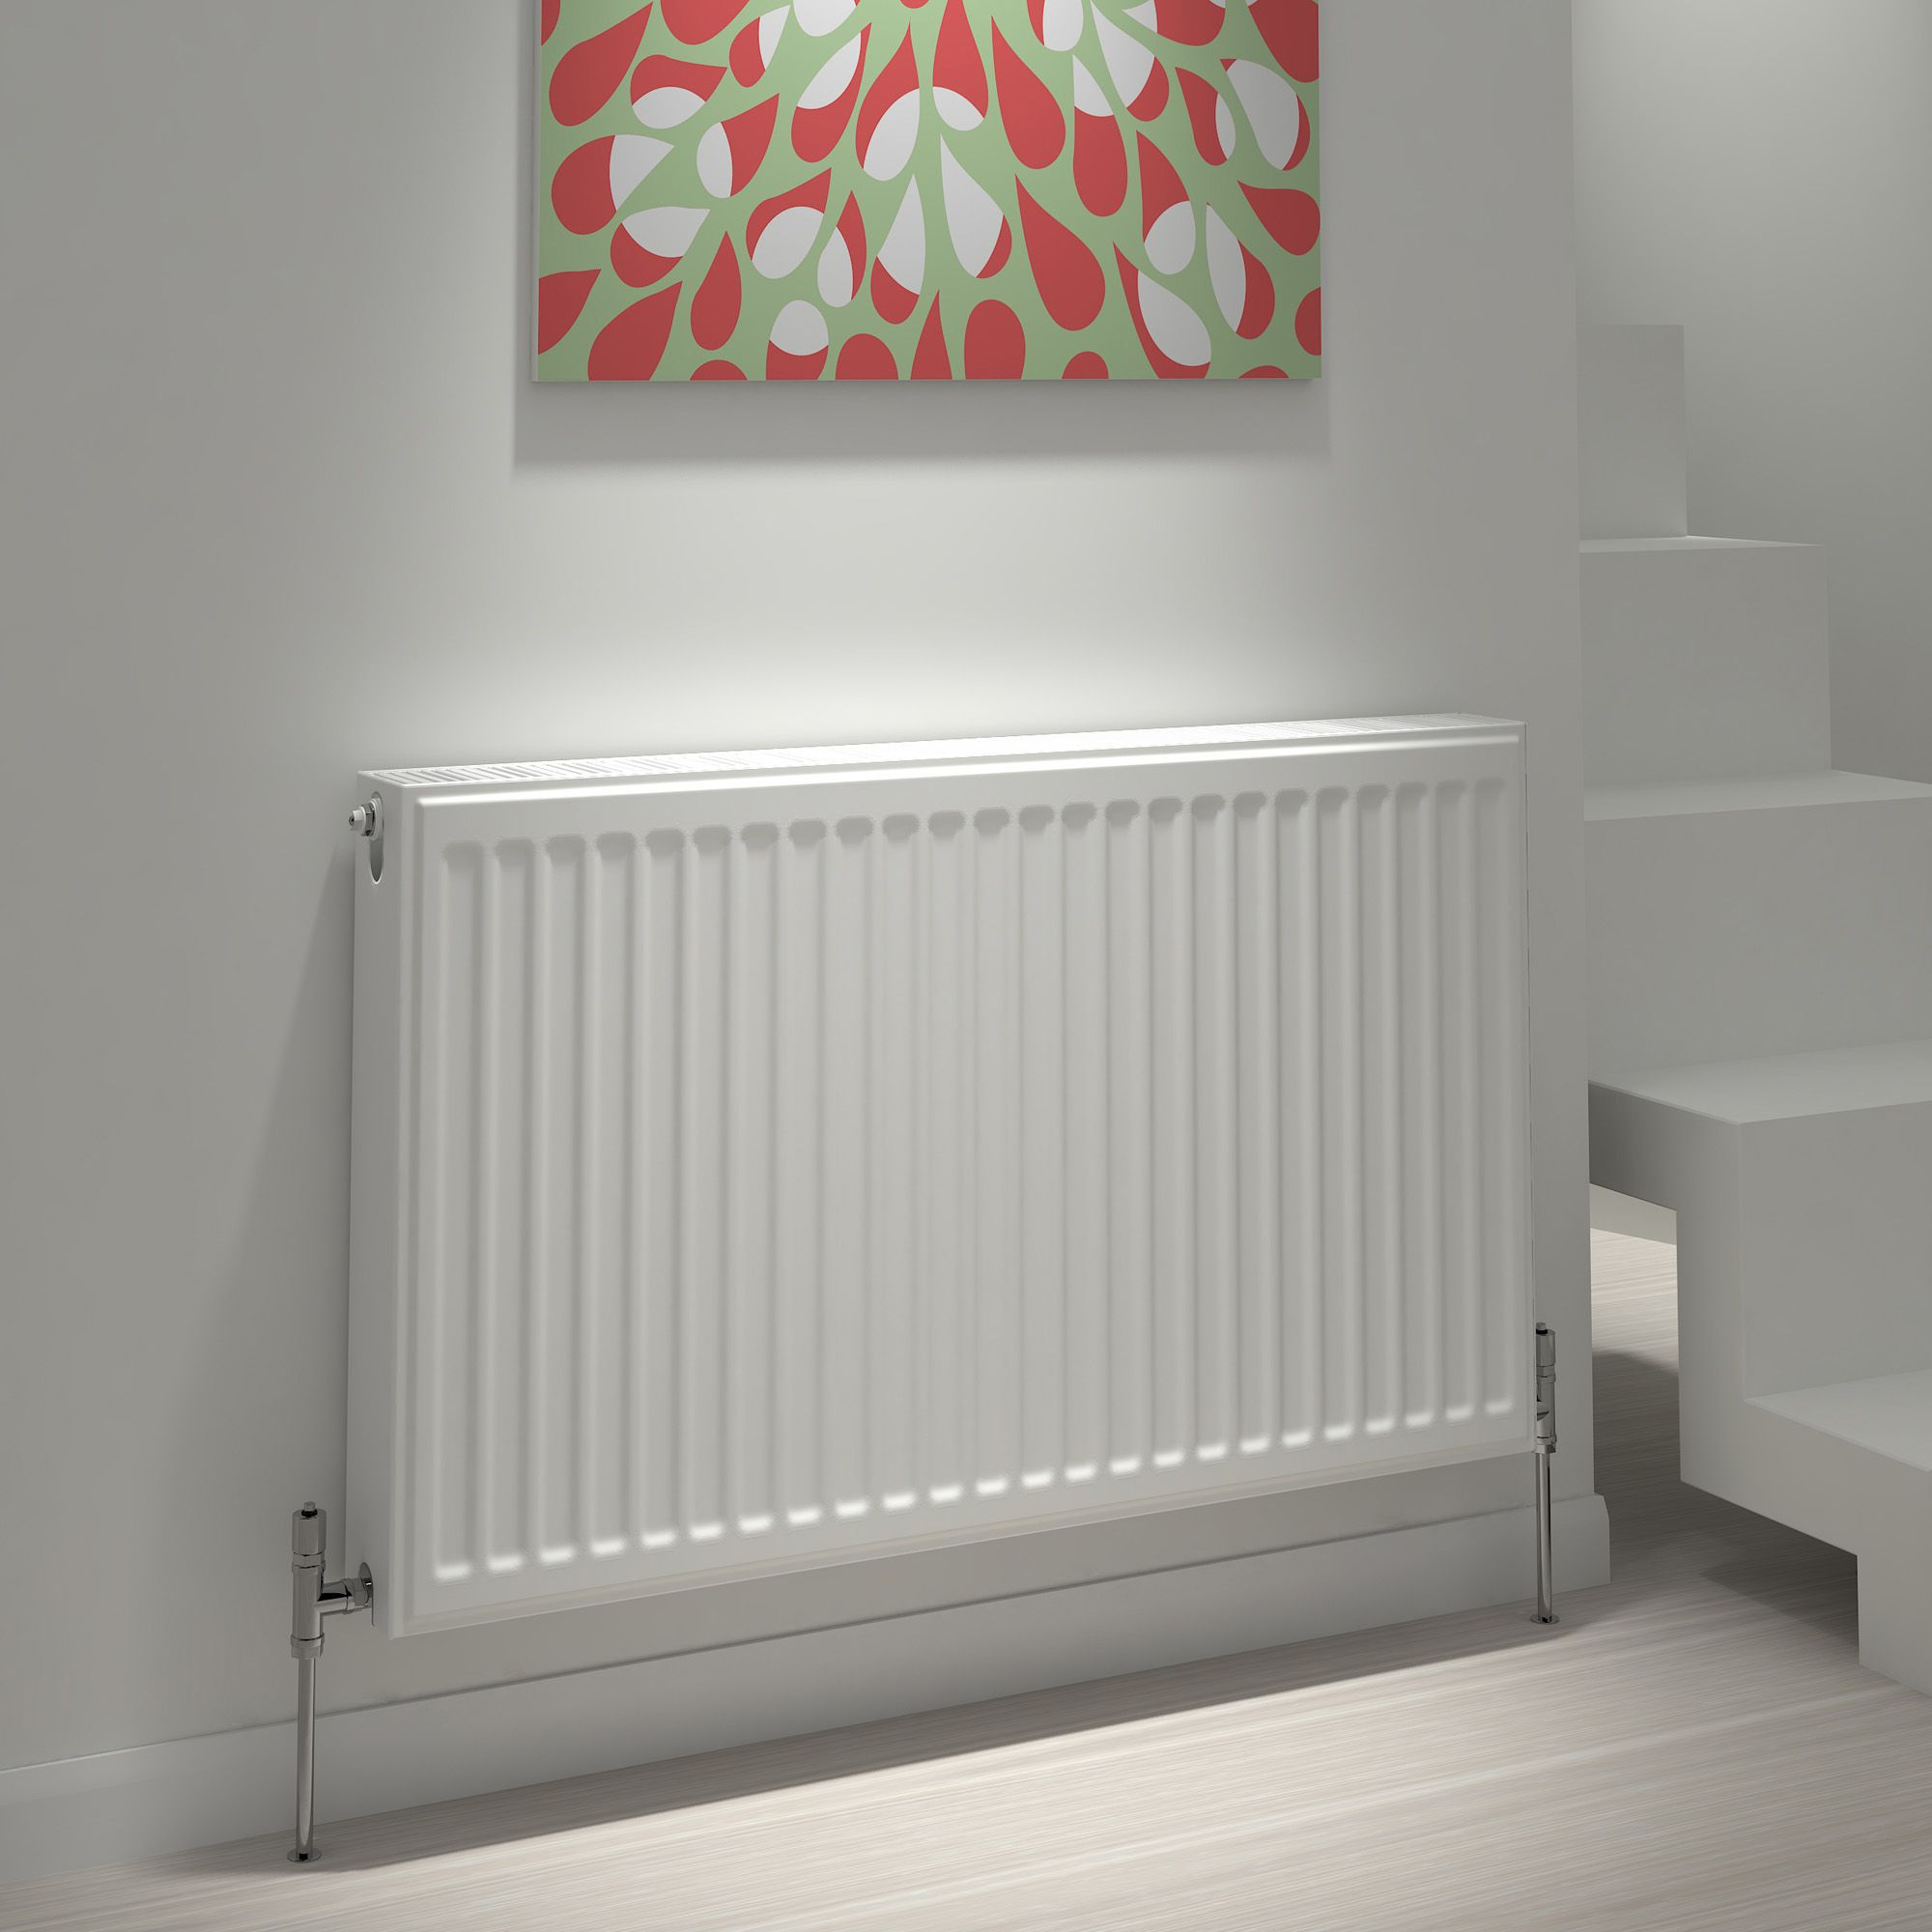 Kudox Type 22 Double Panel Radiator, (H)600mm (W)400mm